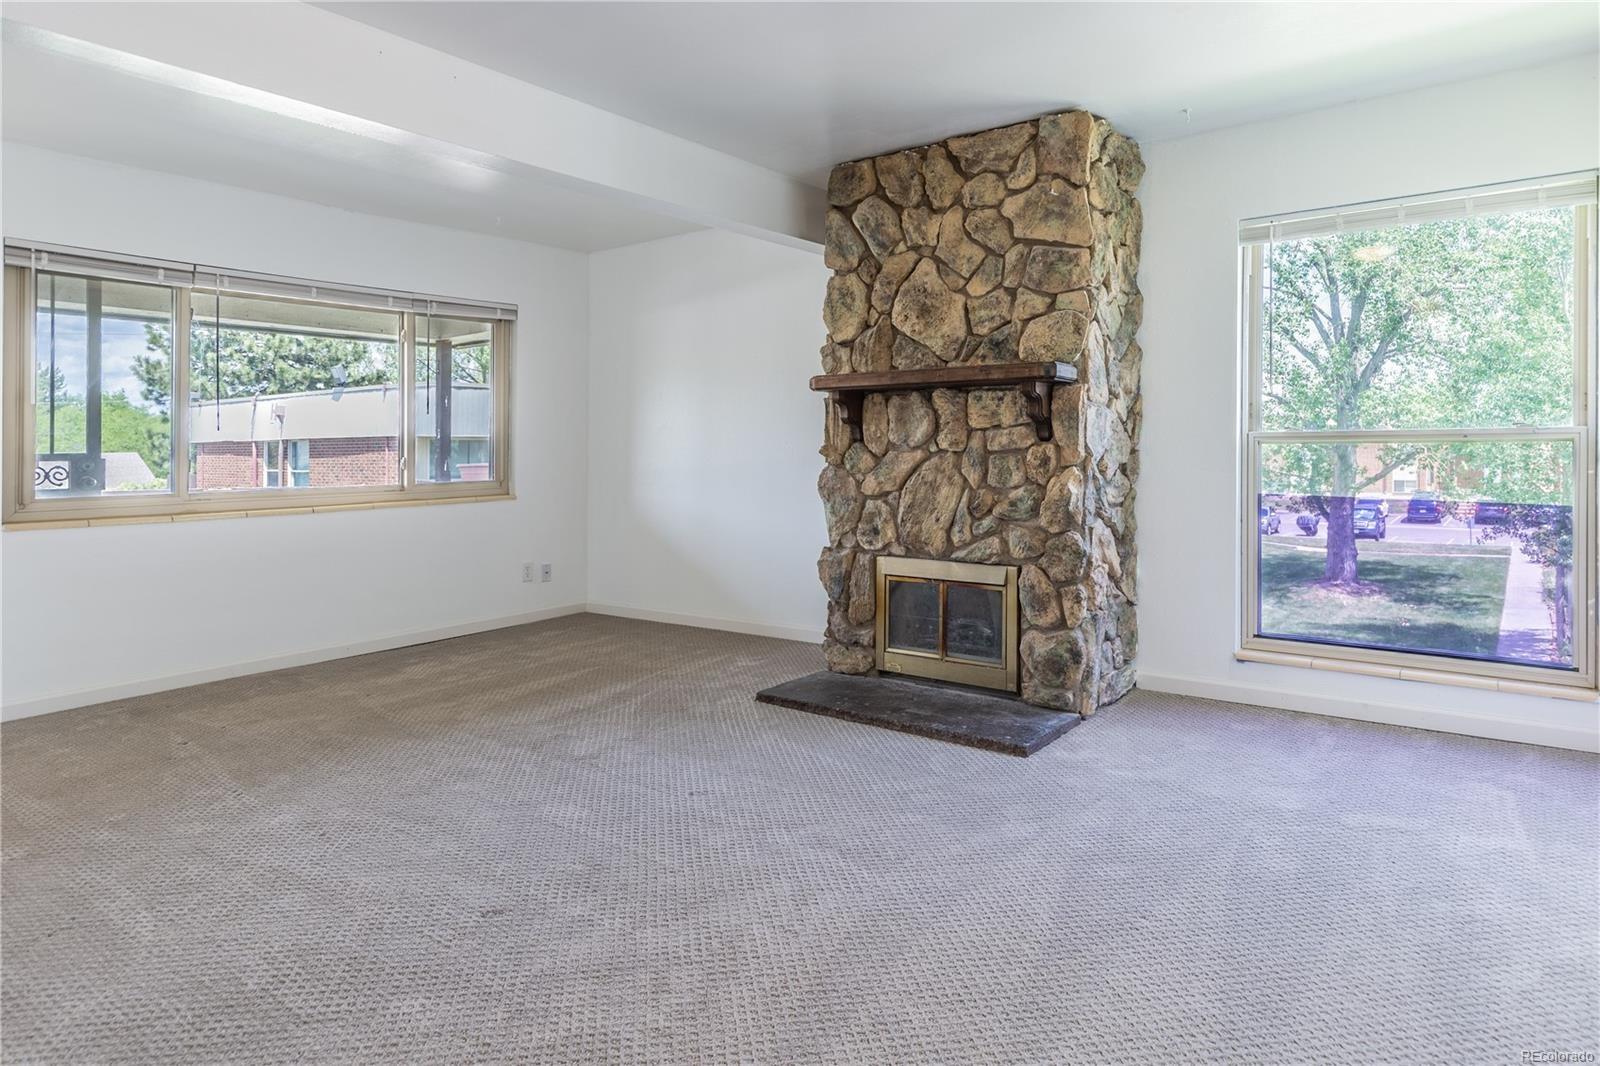 MLS# 7143166 - 2 - 3663 S Sheridan Boulevard #I16, Denver, CO 80235